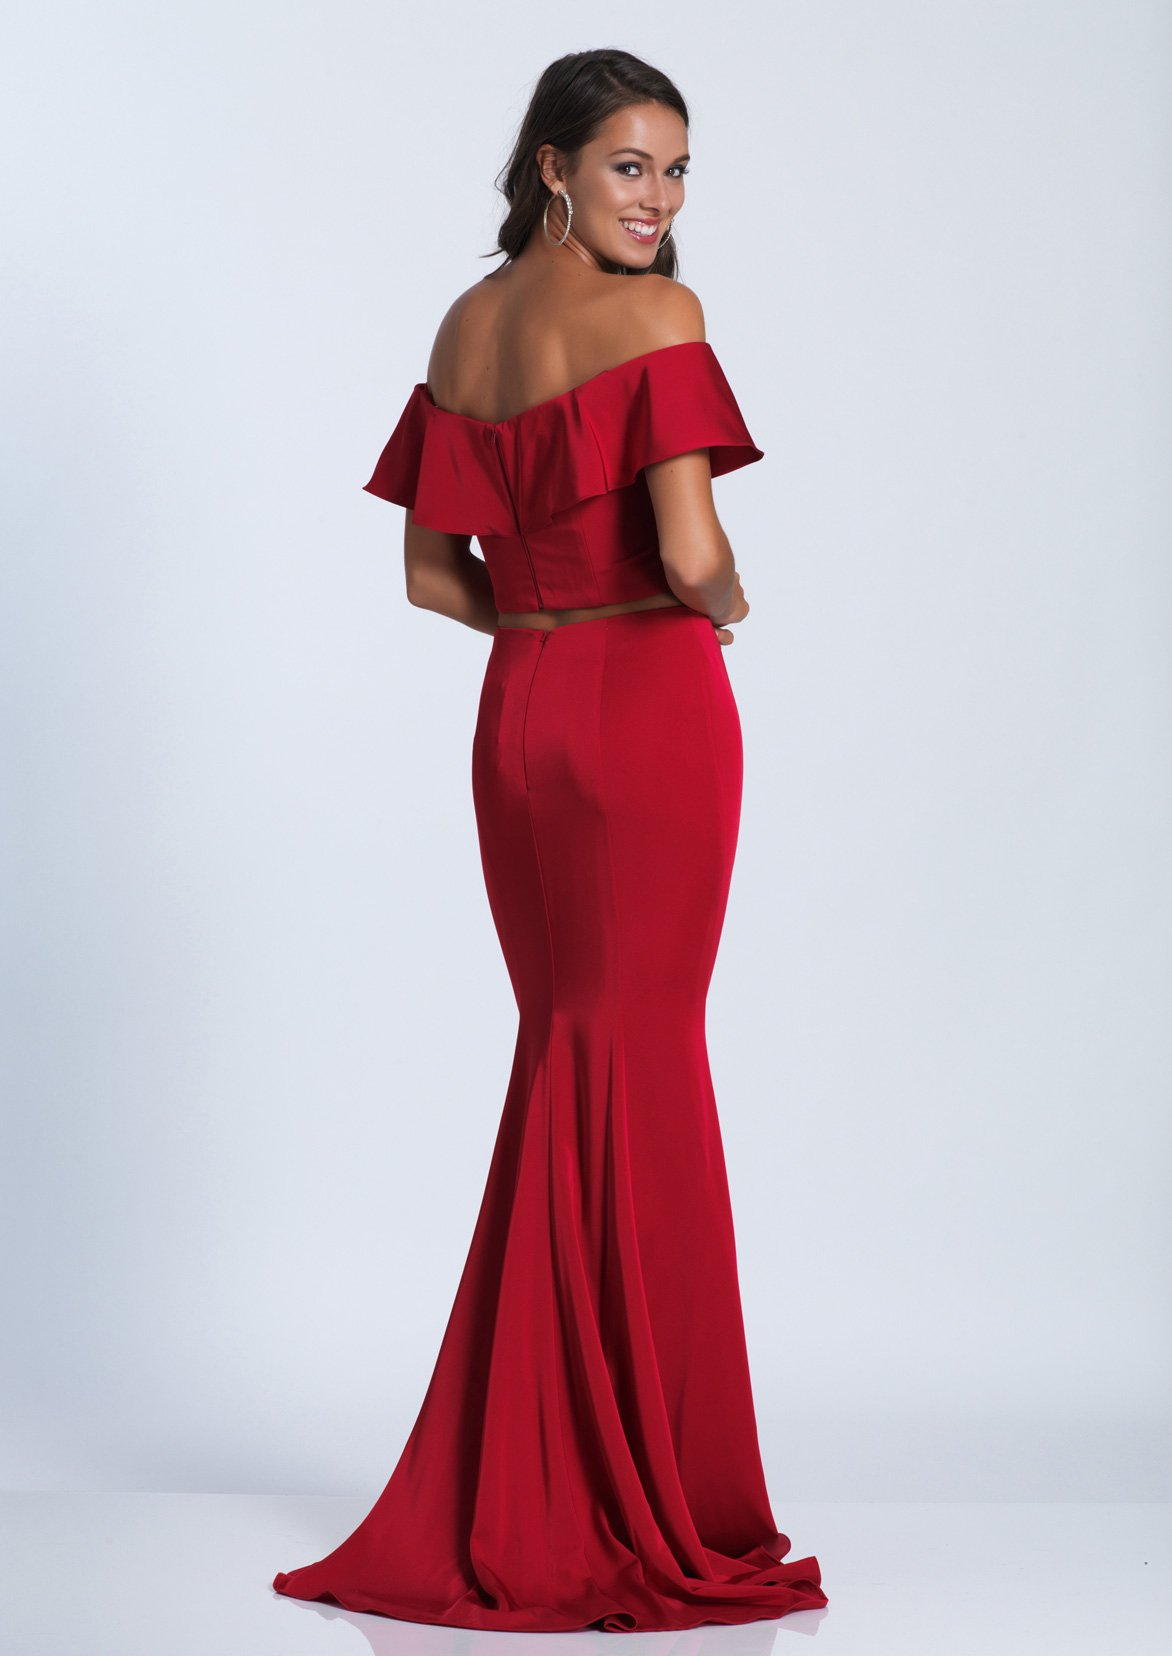 dbf9d2a5b3ce DJ 3416 - Two-Piece Ruffle Off the Shoulder Jersey Mermaid with ...